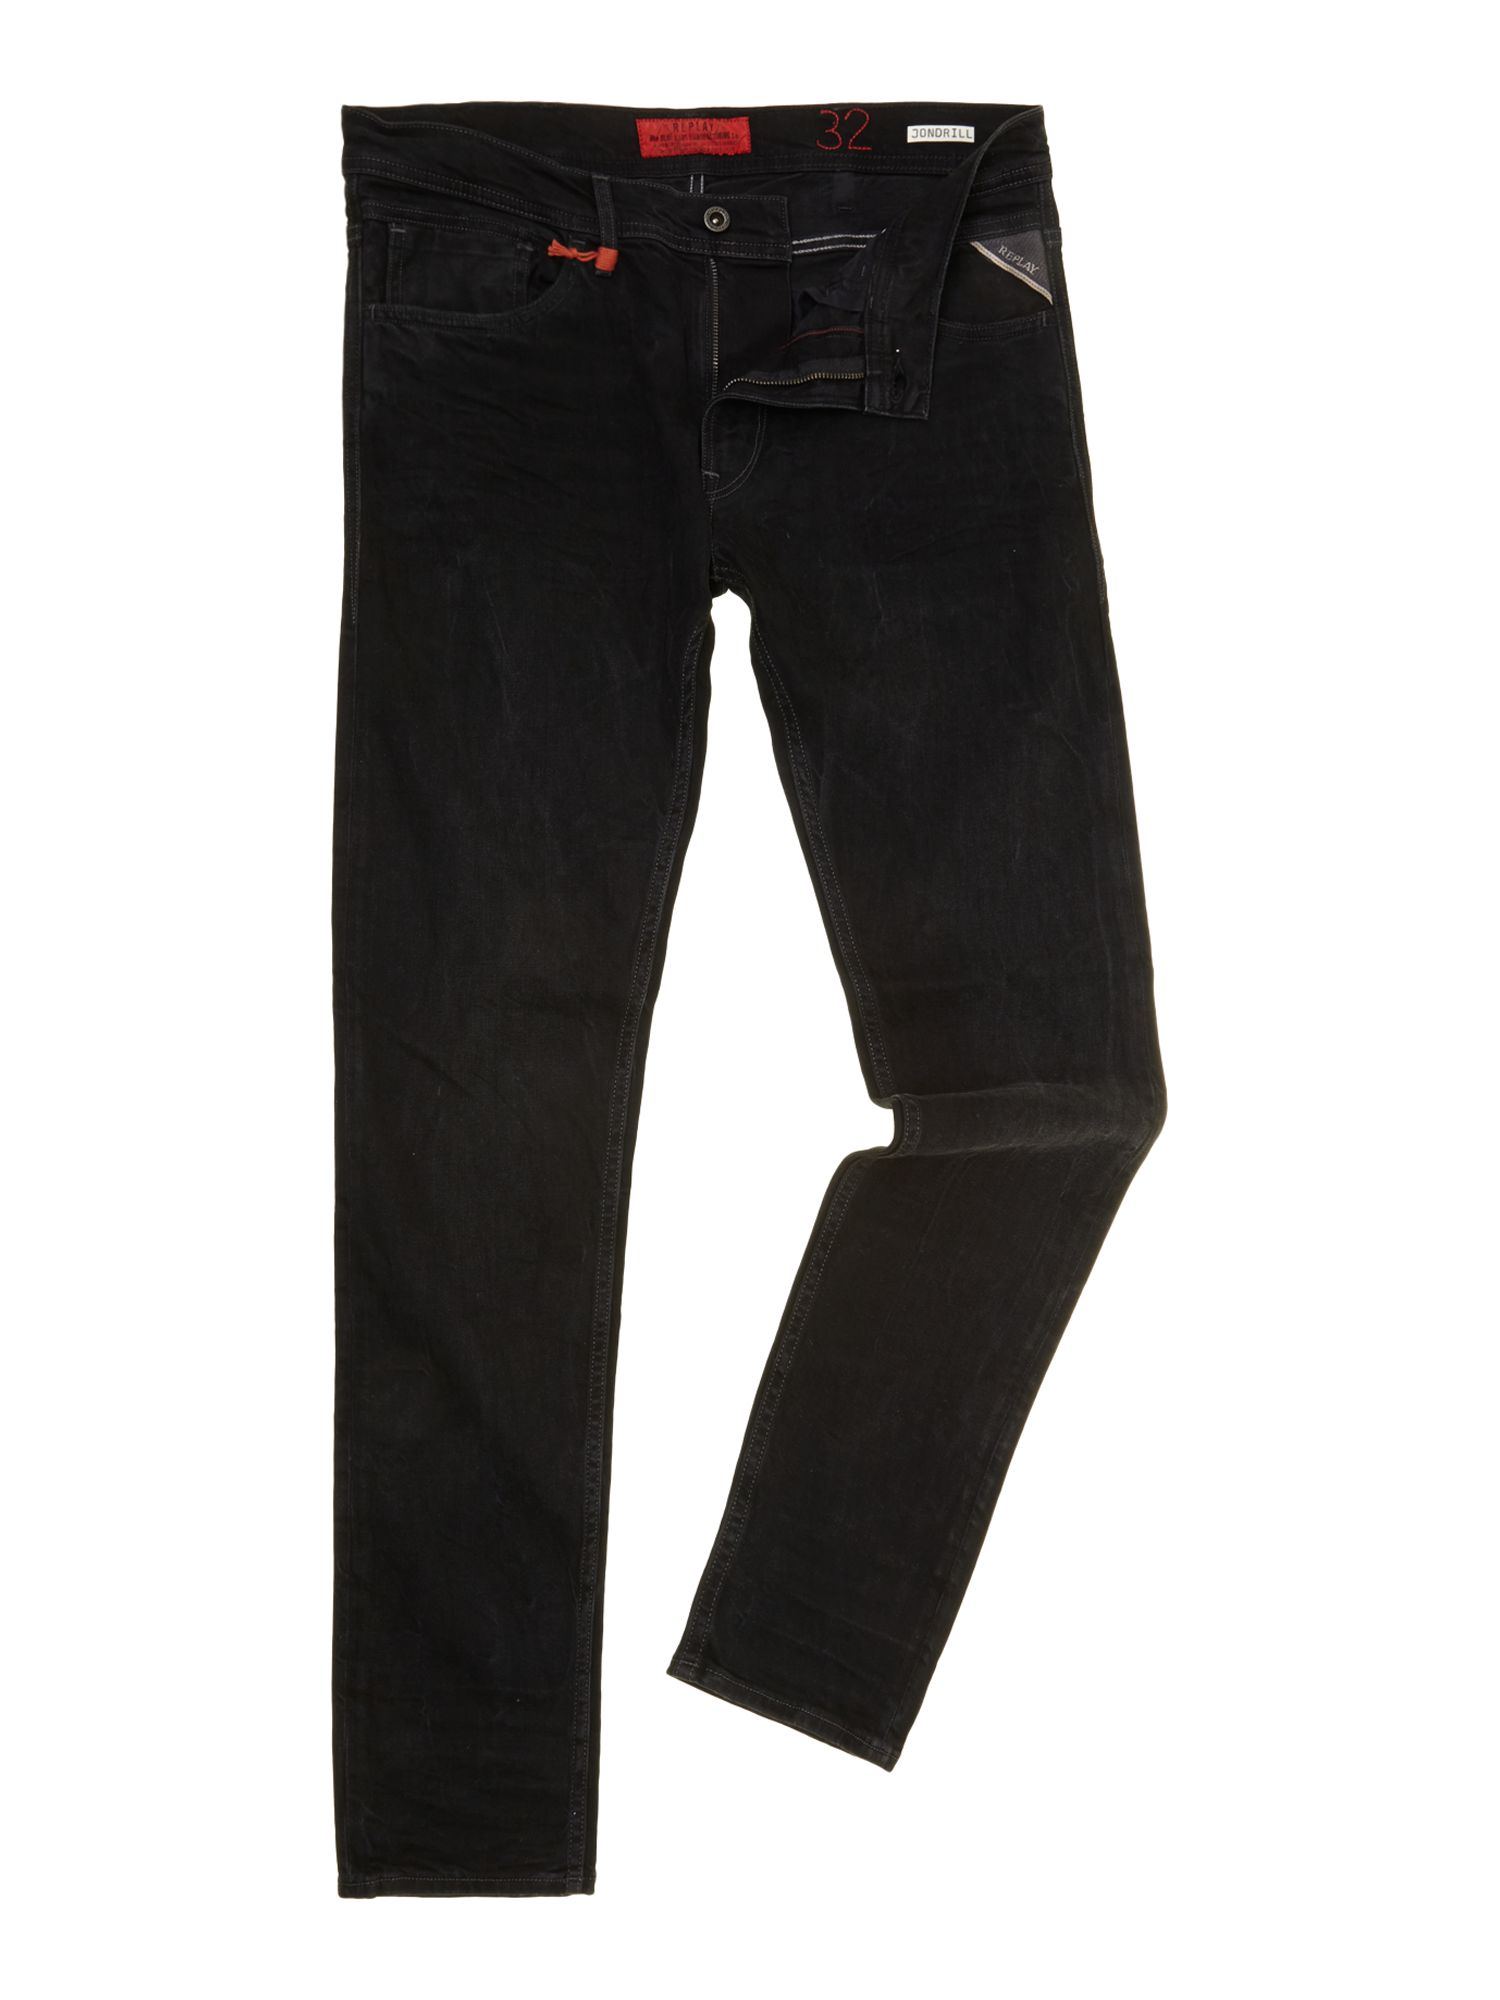 Jondrill skinny fit stretch denim jeans